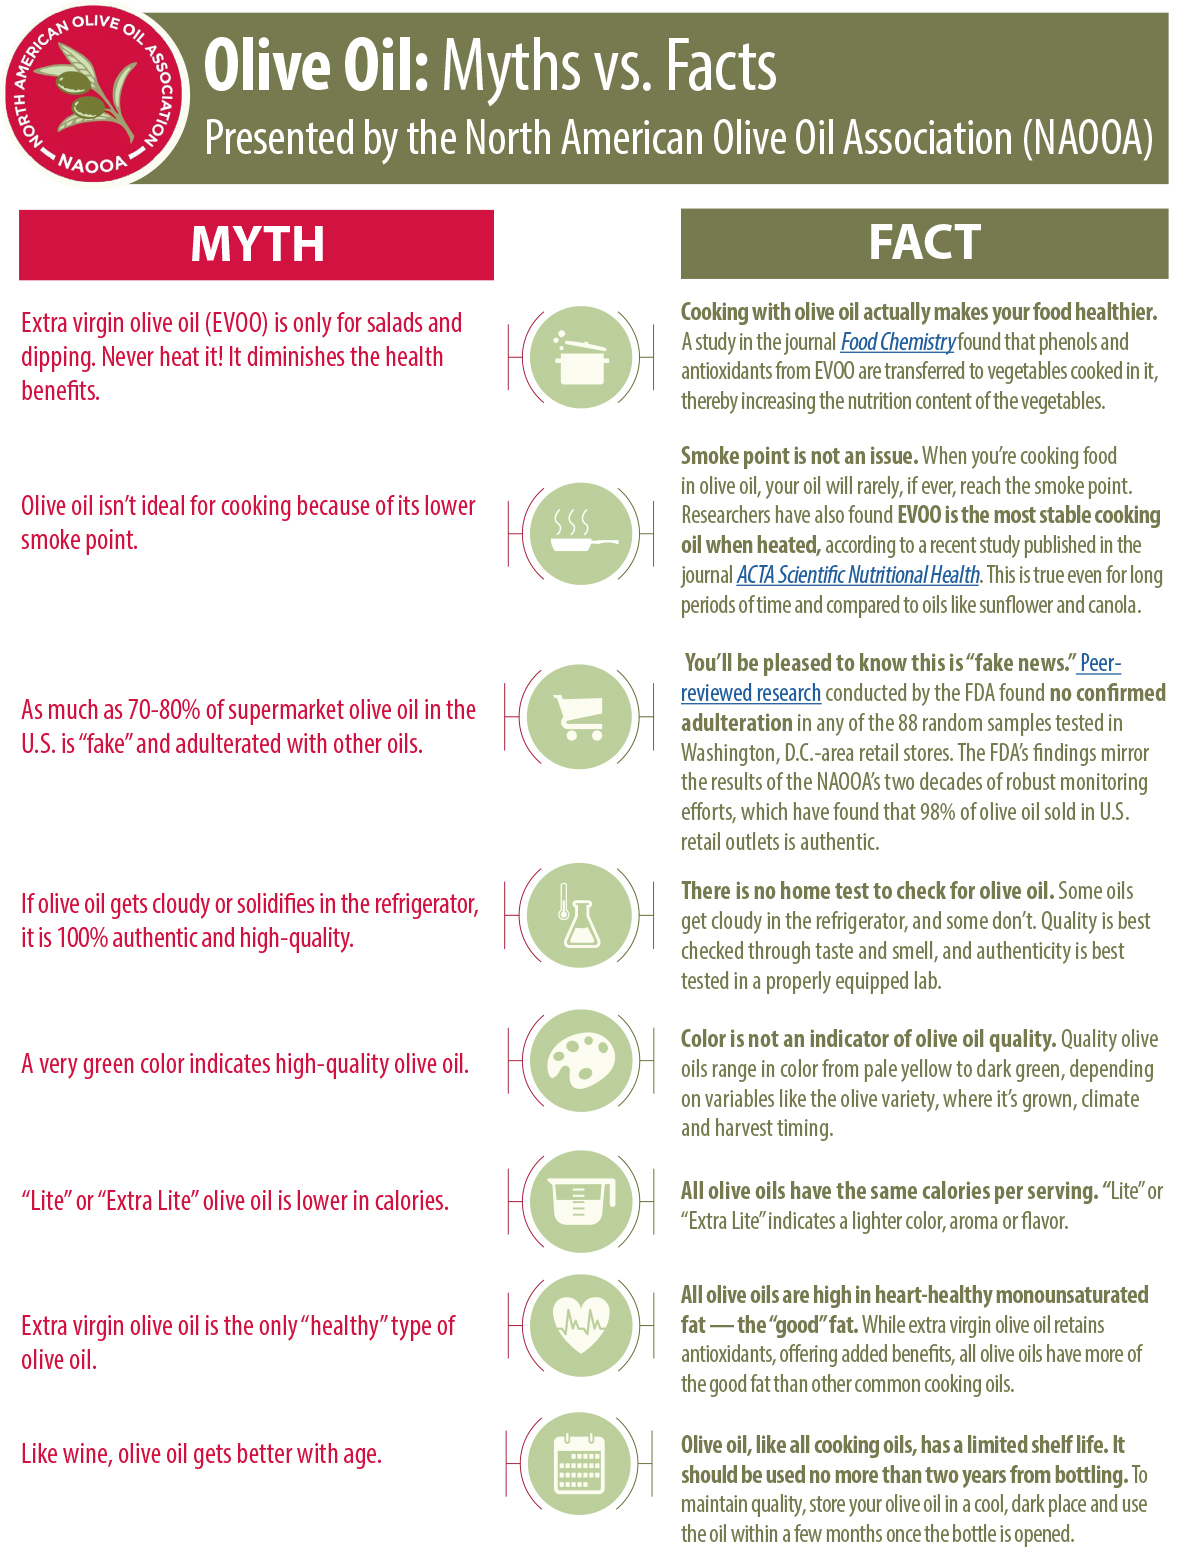 Olive Oil Myths vs. Facts Redesign